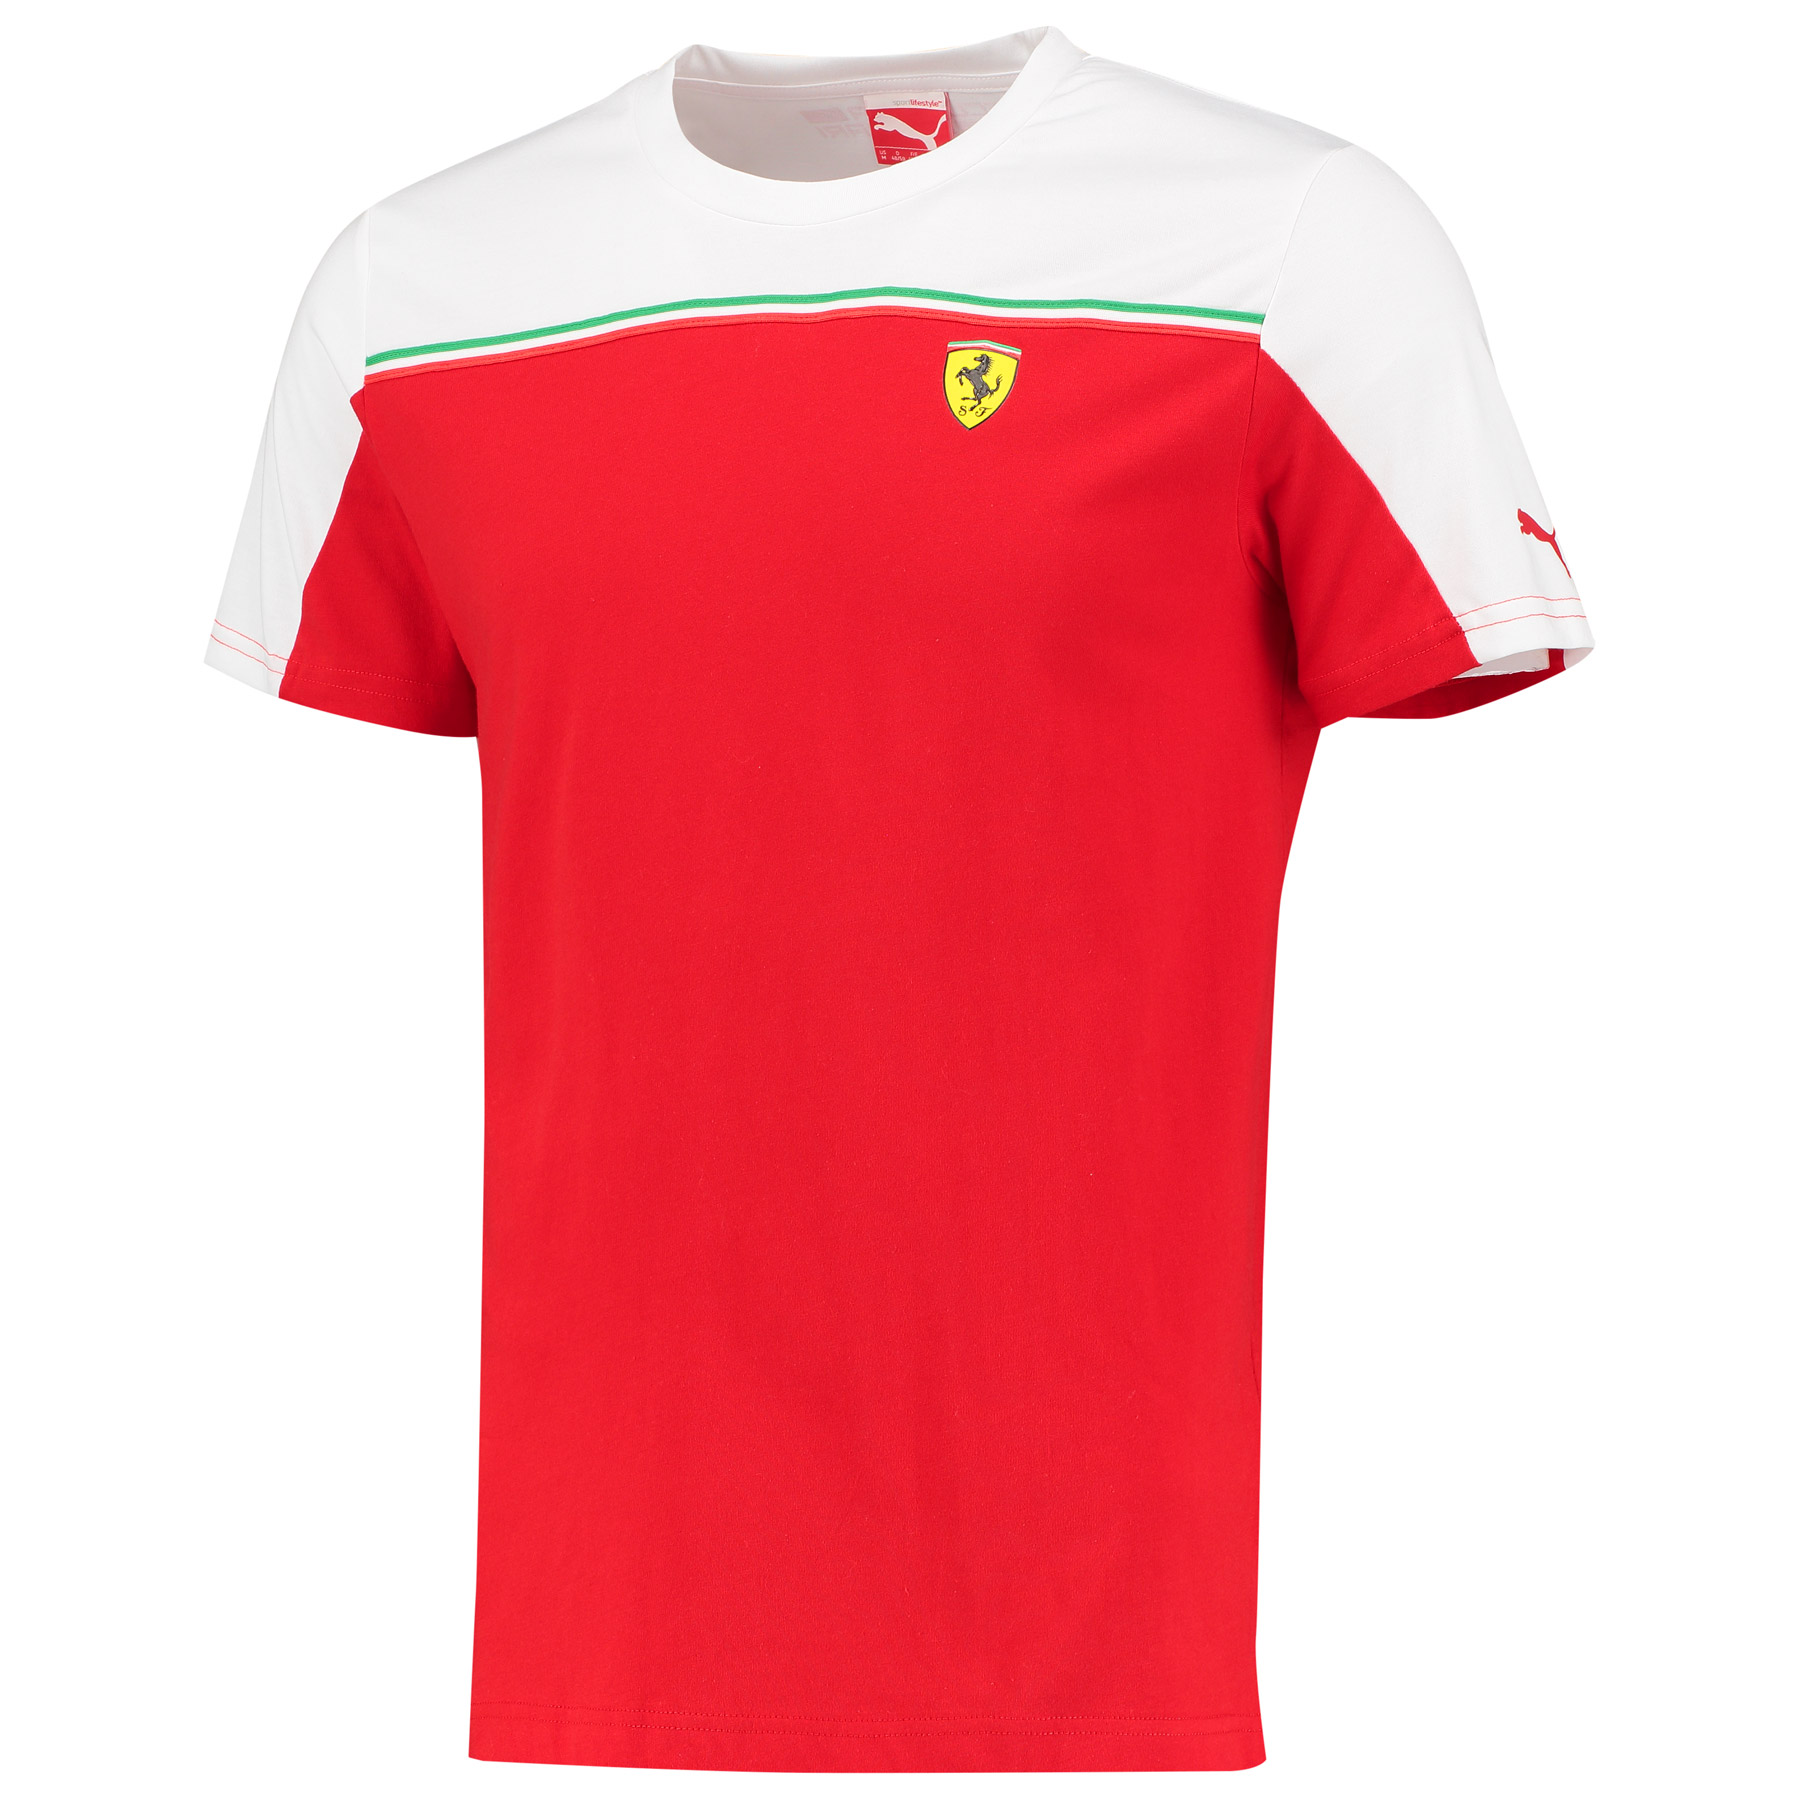 Scuderia Ferrari 2015 T-Shirt Red